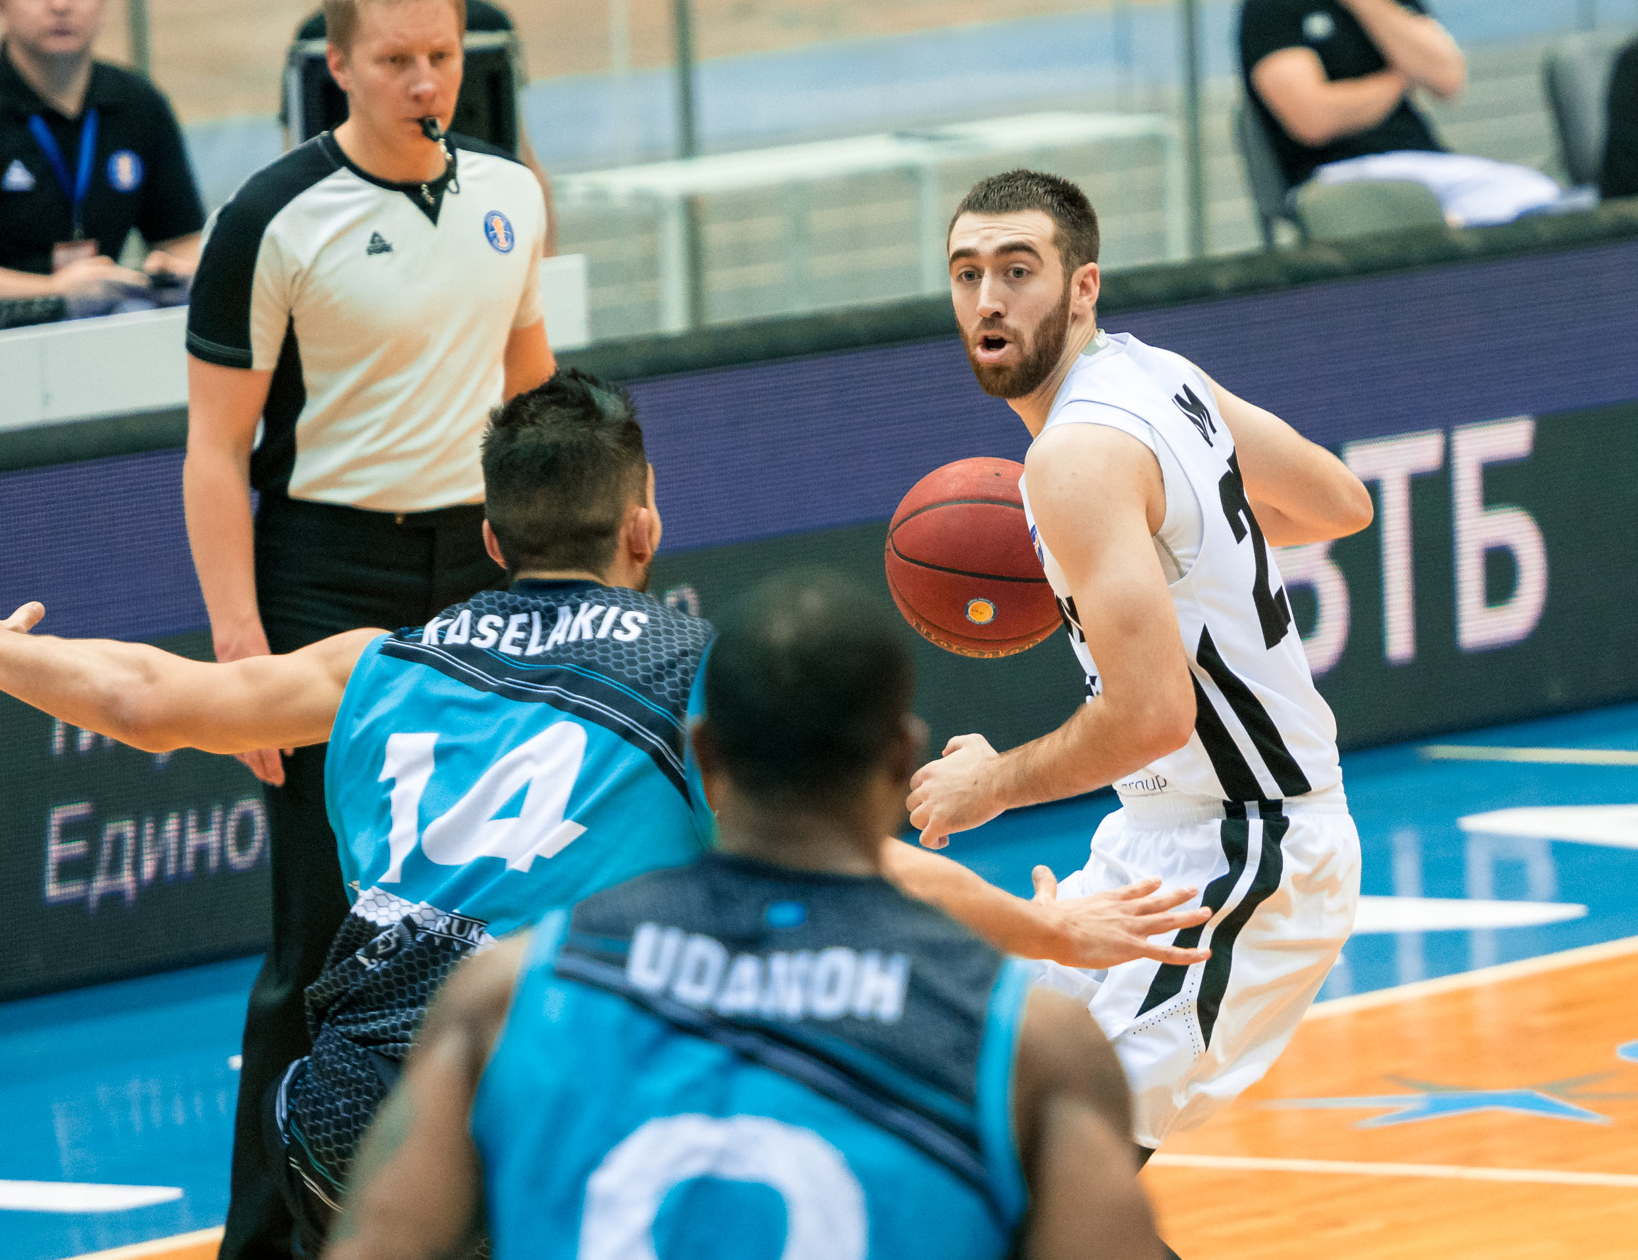 Nizhny Novgorod Knocks Out Astana On The Road